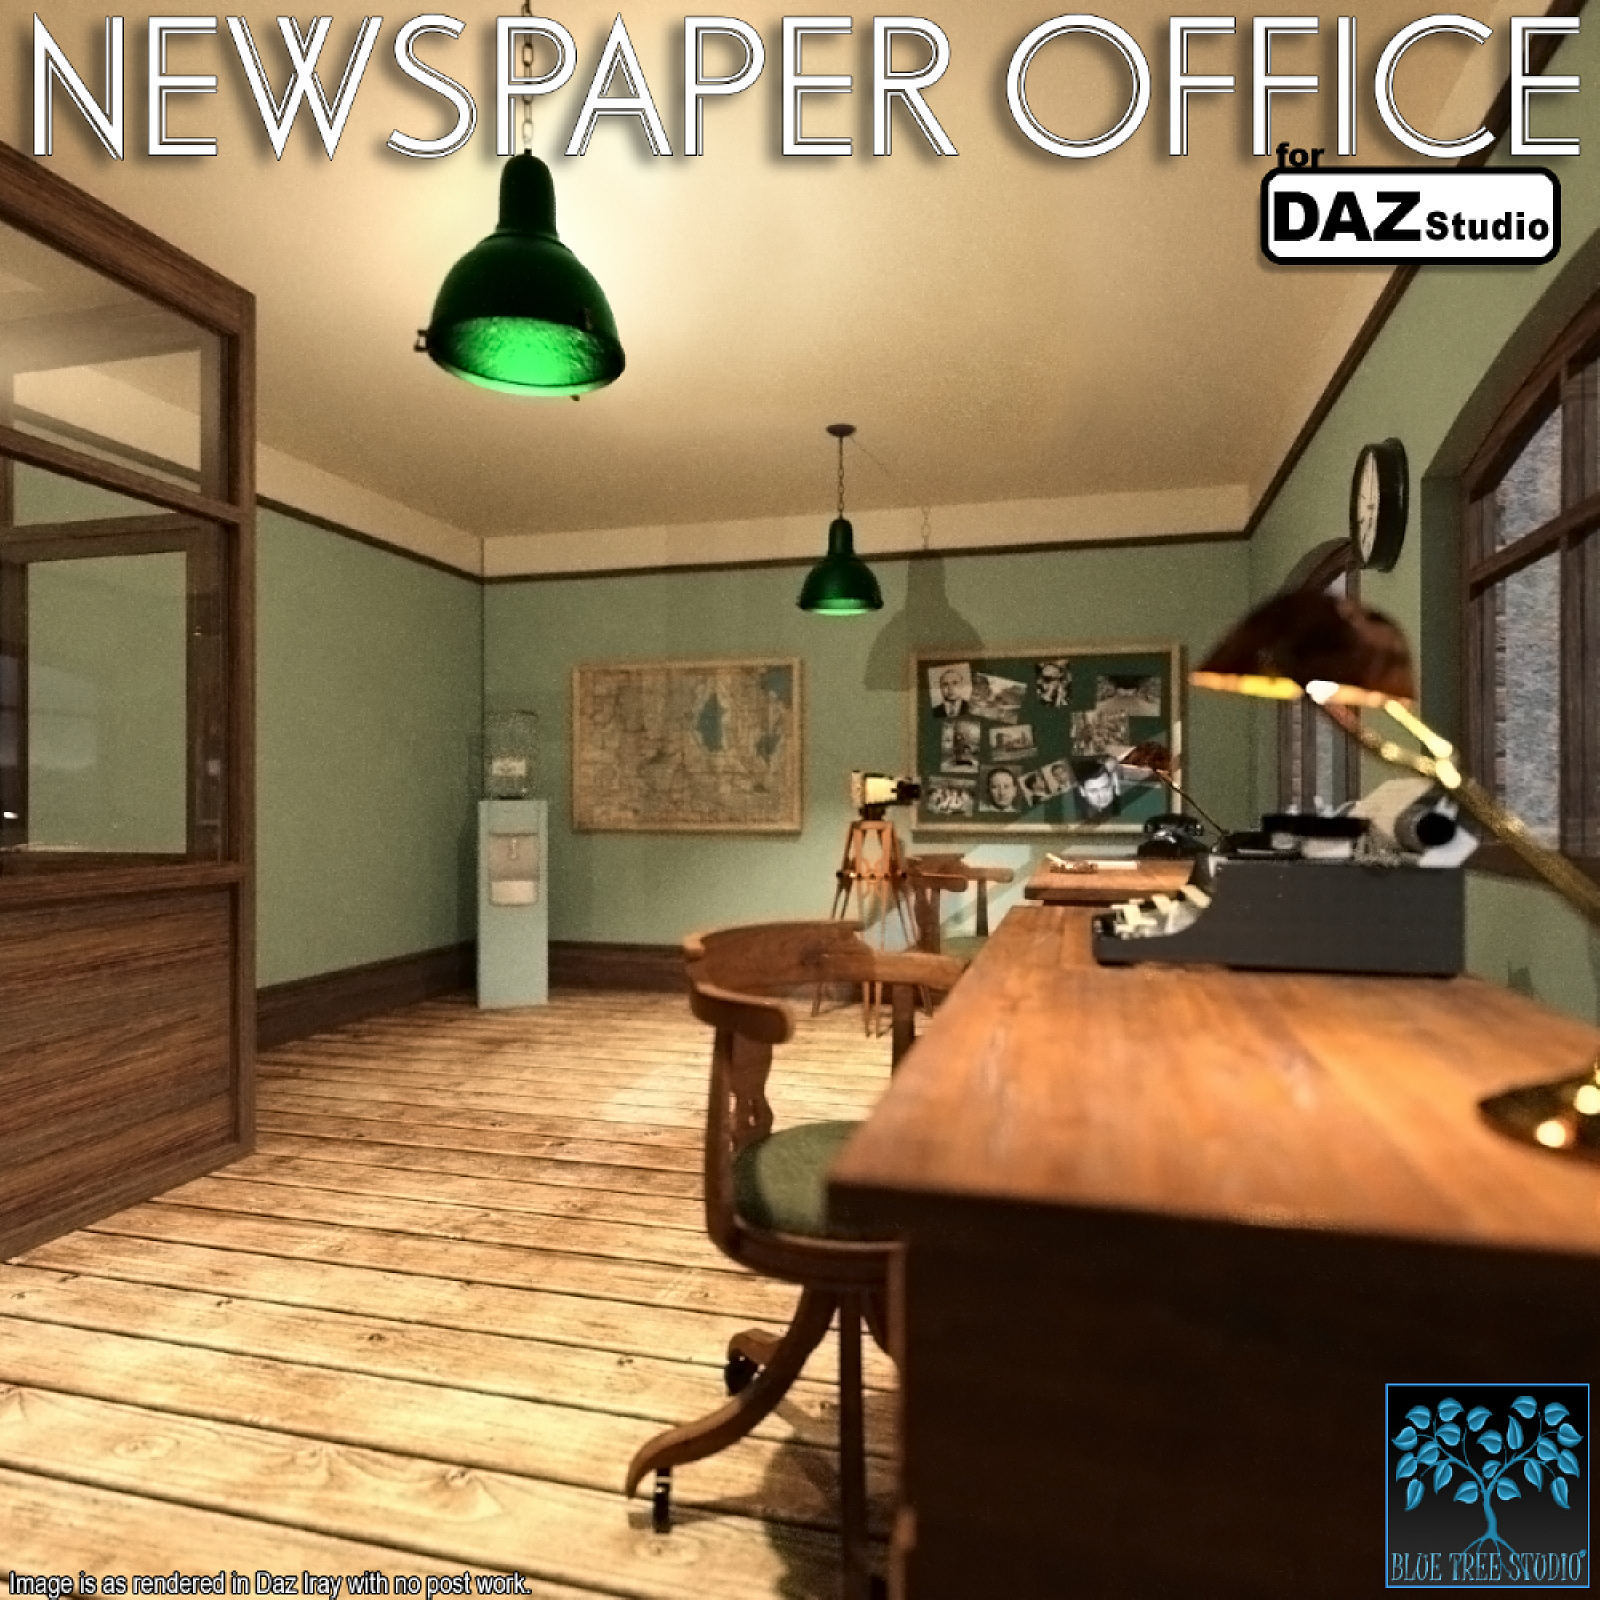 Newspaper Office for Daz Studio by BlueTreeStudio